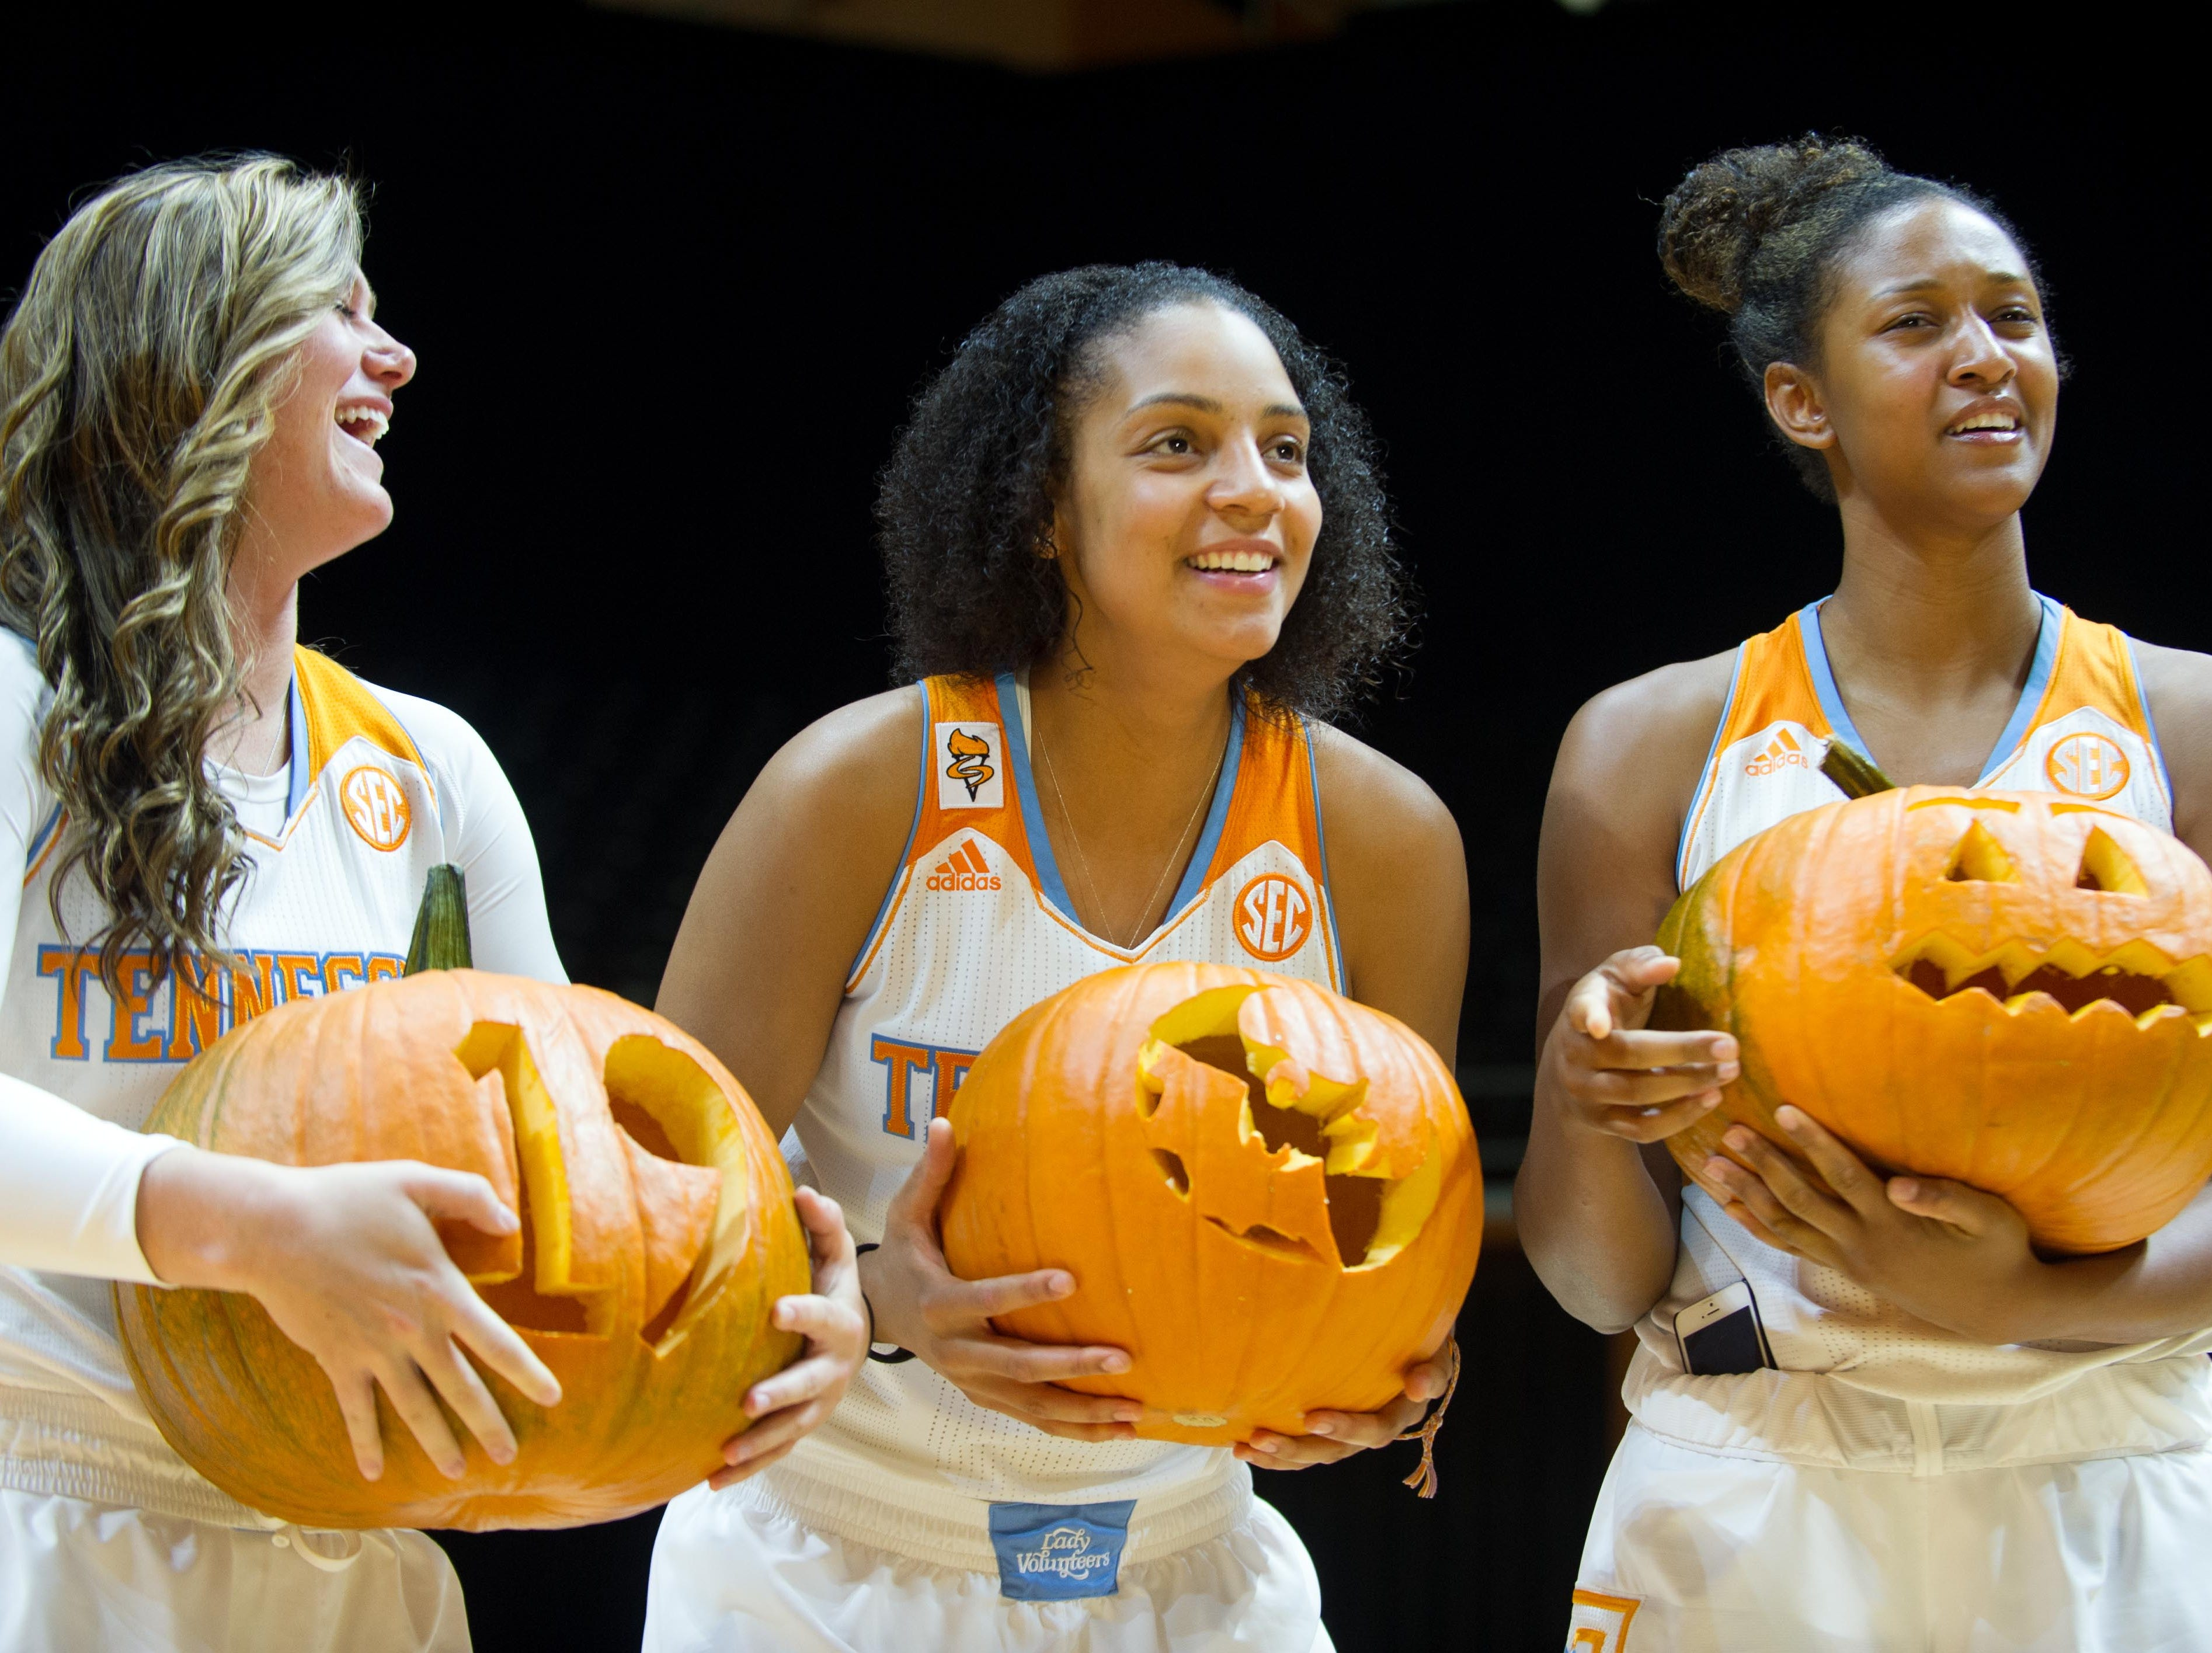 Tennessee players, from left, Alexa Middleton, Cierra Burdick, and Jaime Nared show off their carved pumpkins during Media Day at Thompson-Boling Arena on Wednesday, October 29, 2014. The number 19 is carved in Middleton's pumpkin because she turns 19 on Halloween. A silhouette of a bat decorates Burdick's pumpkin, and Nared's is a classic Jack-o'-lantern face with a Power T carved on the opposite side.